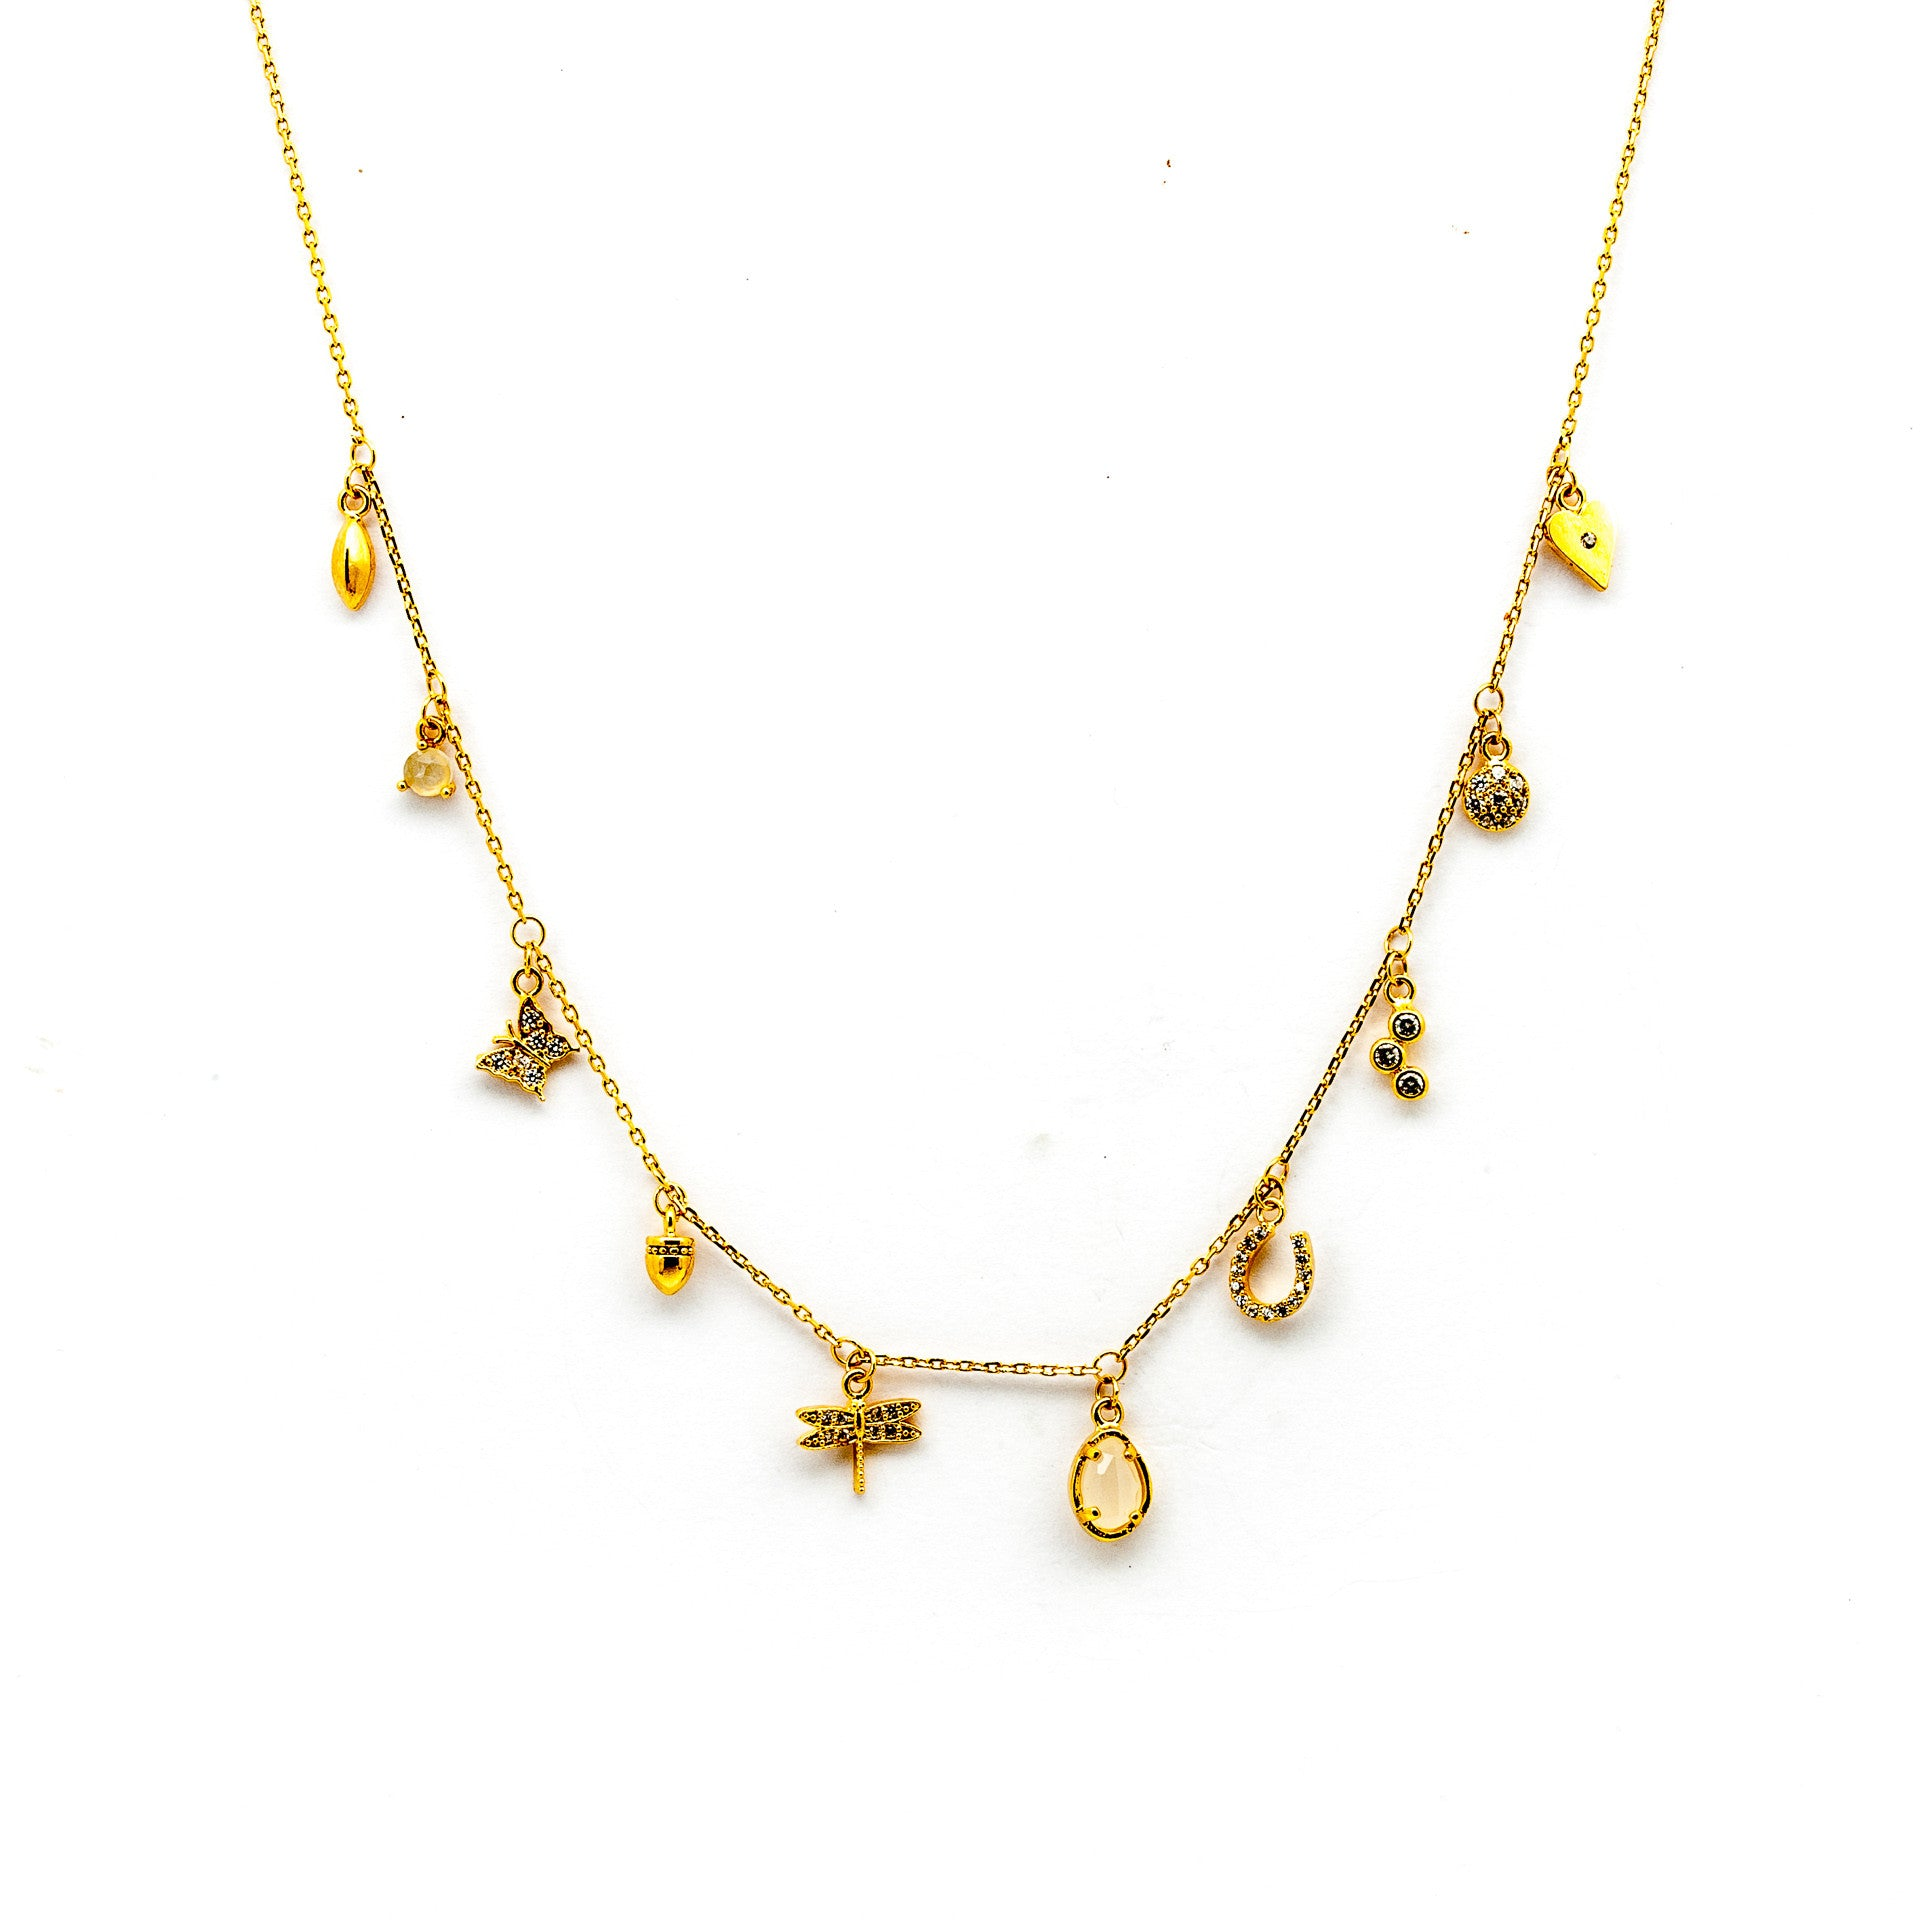 GOLD MULTI CHARM NECKLACE WITH DRAGONFLY CHARM